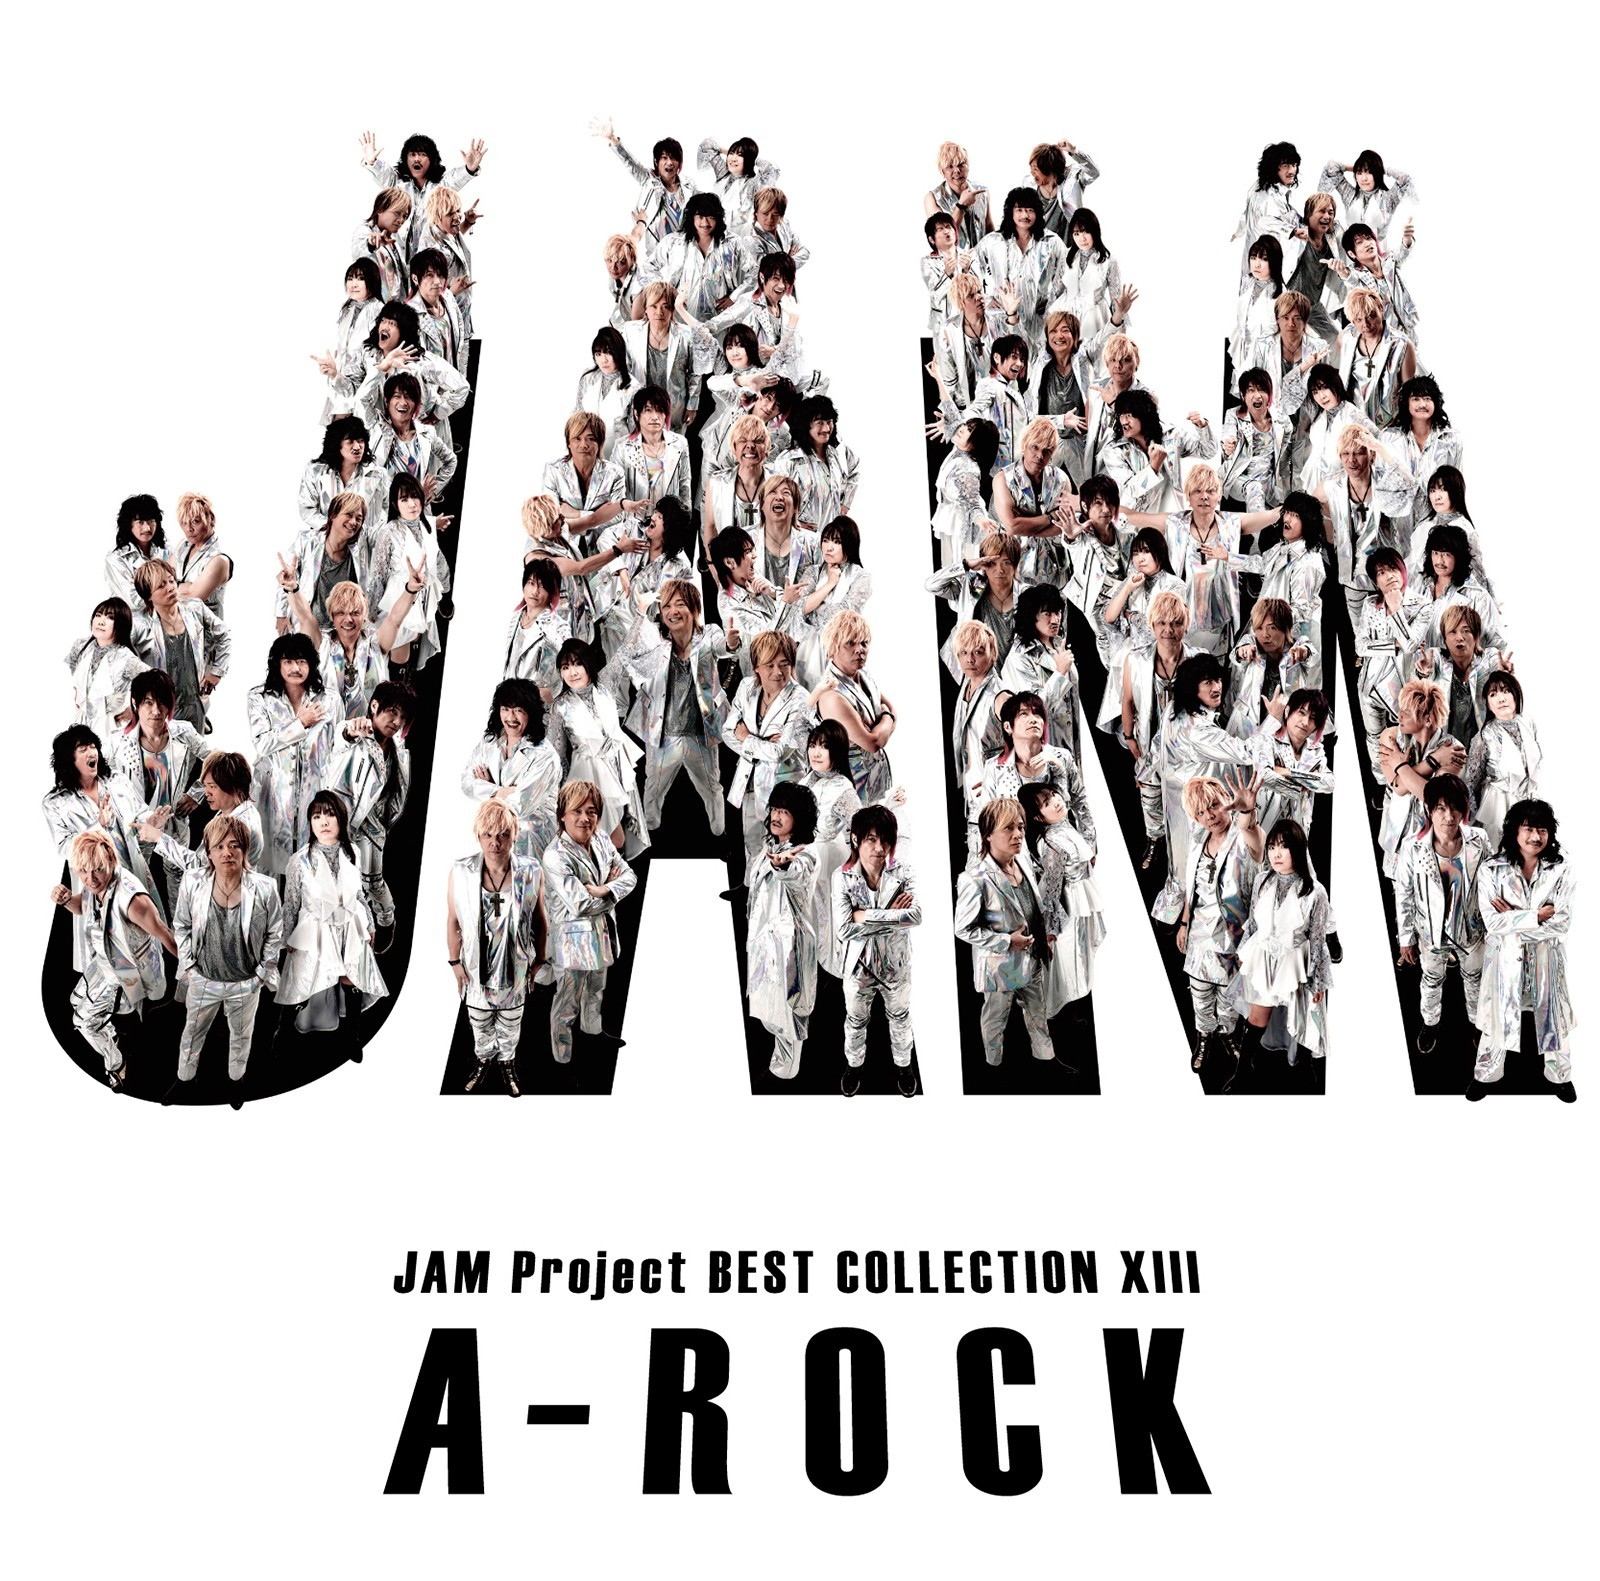 JAM Project – A-ROCK ~JAM Project BEST COLLECTION XIII~ [Mora FLAC 24bit/96kHz]